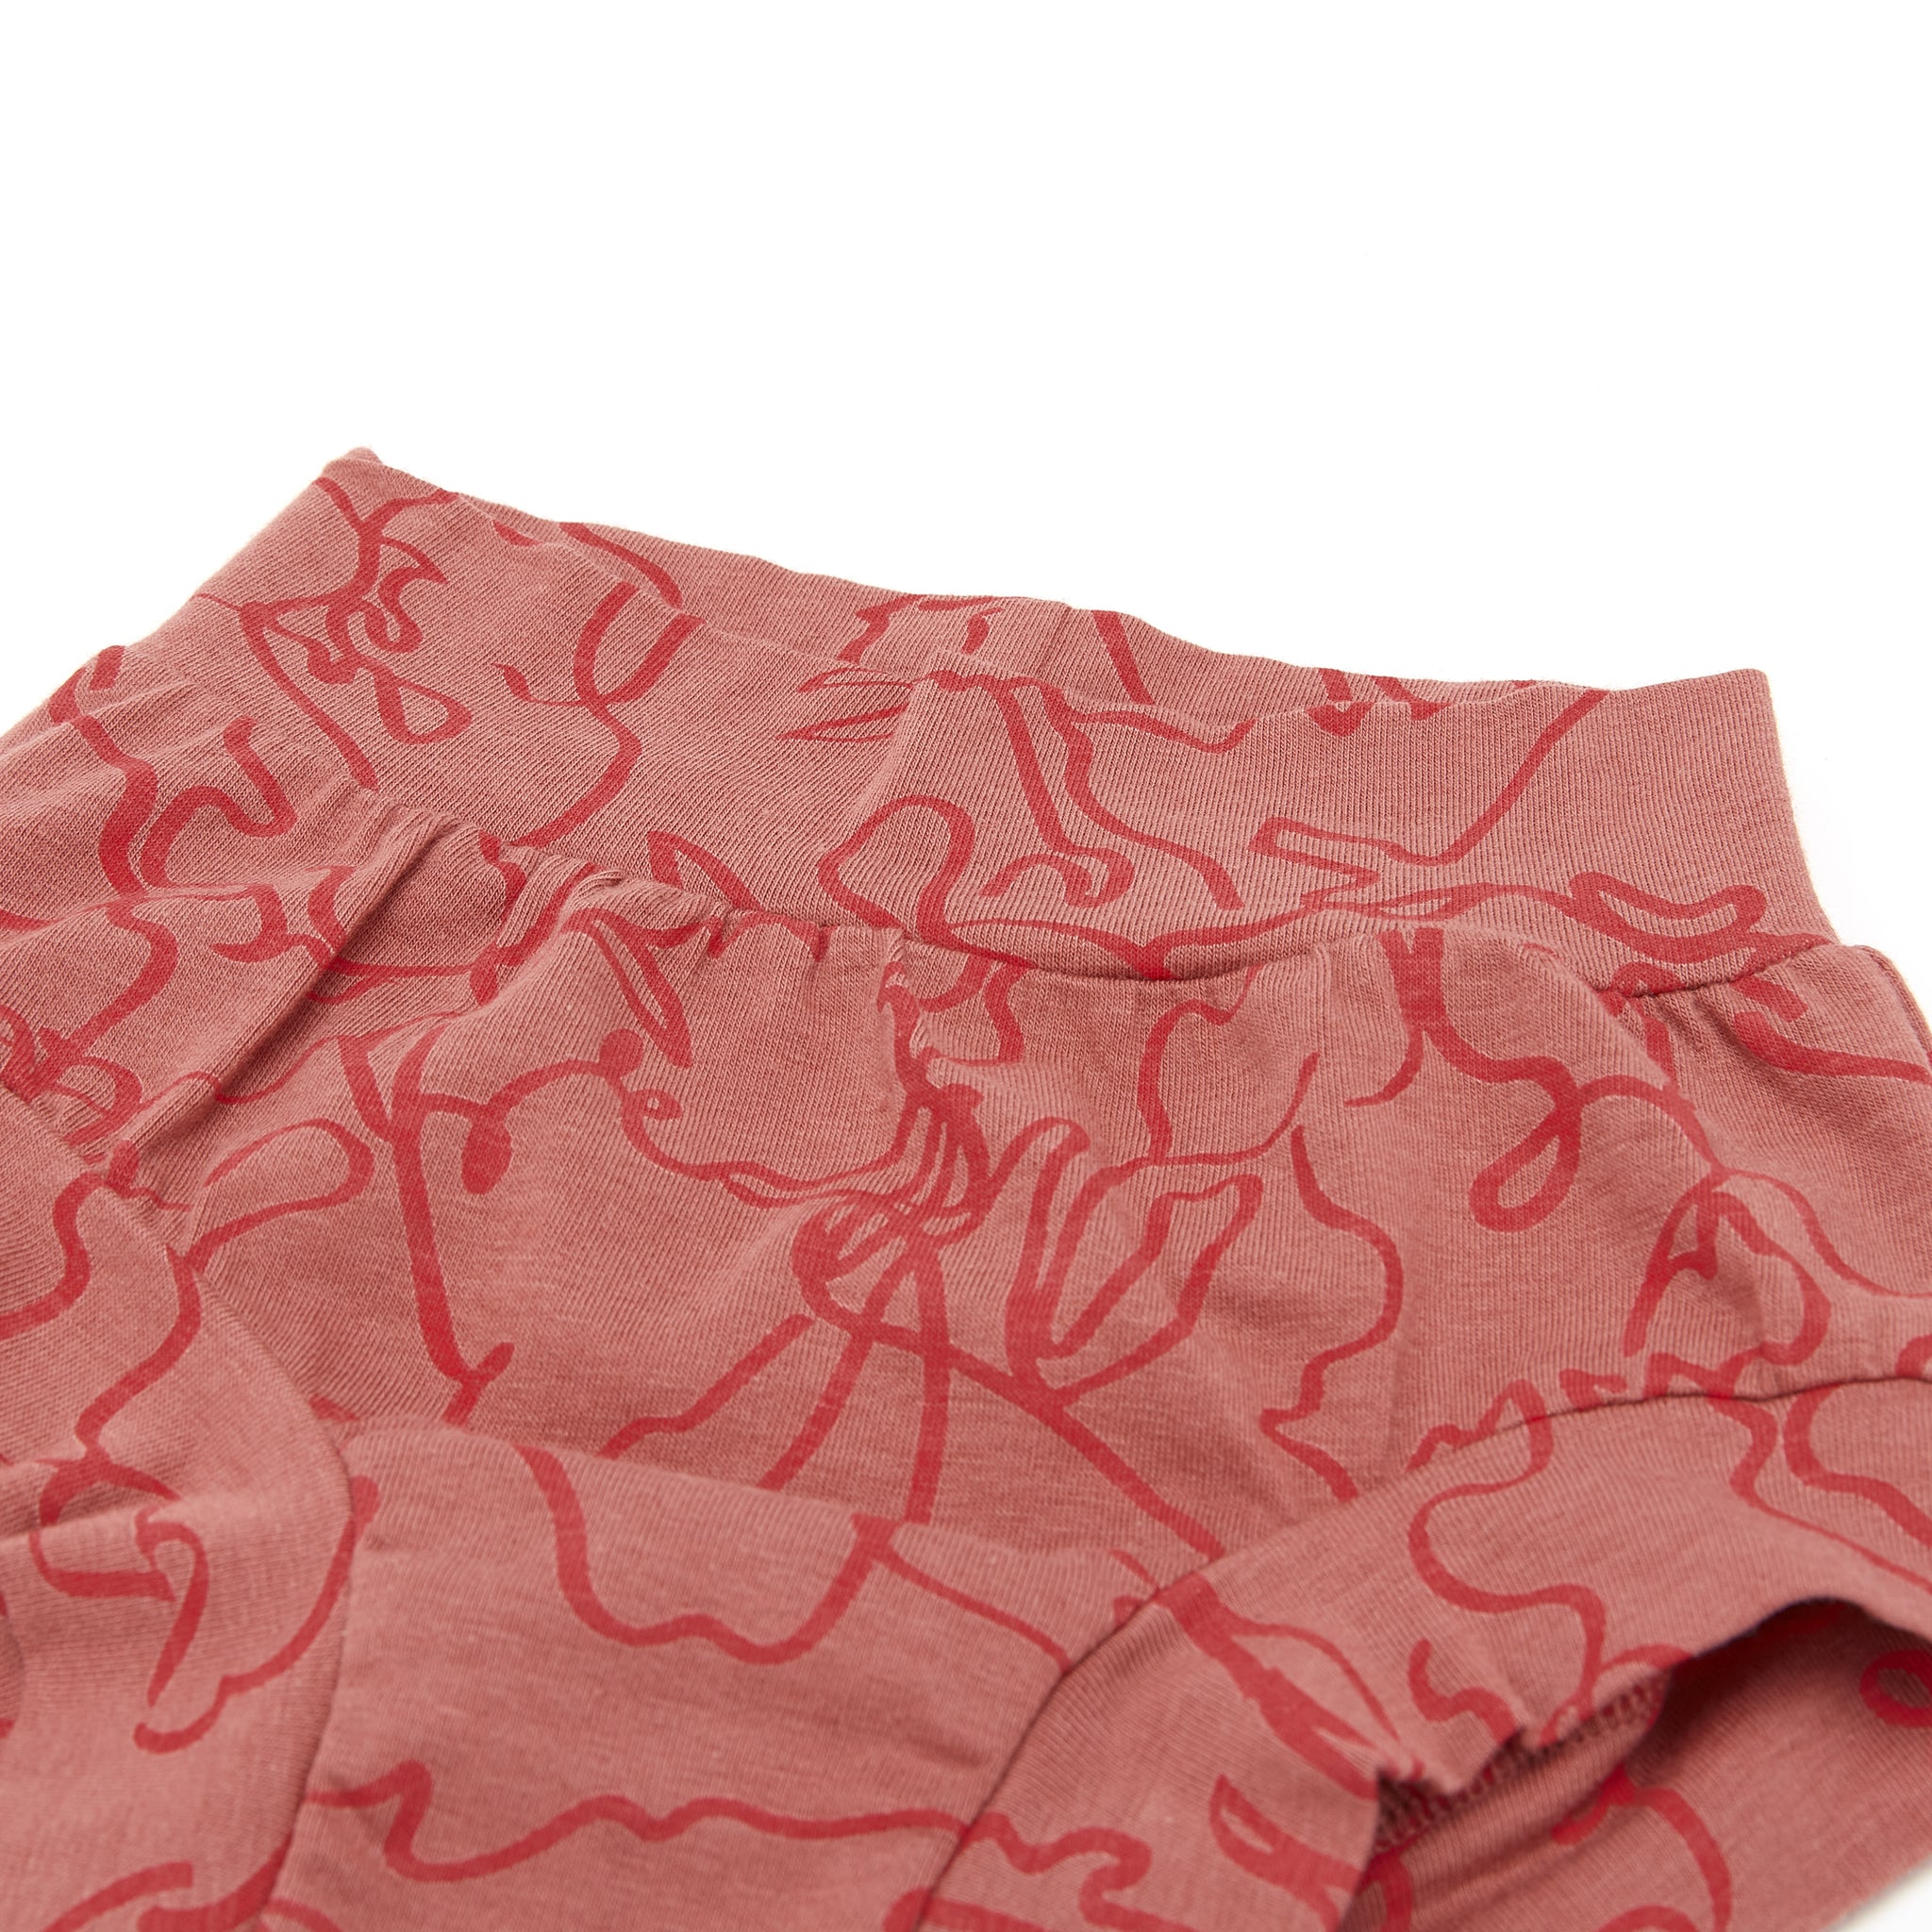 Bamboo & Organic Cotton Kids Underwear Brief - Squiggle